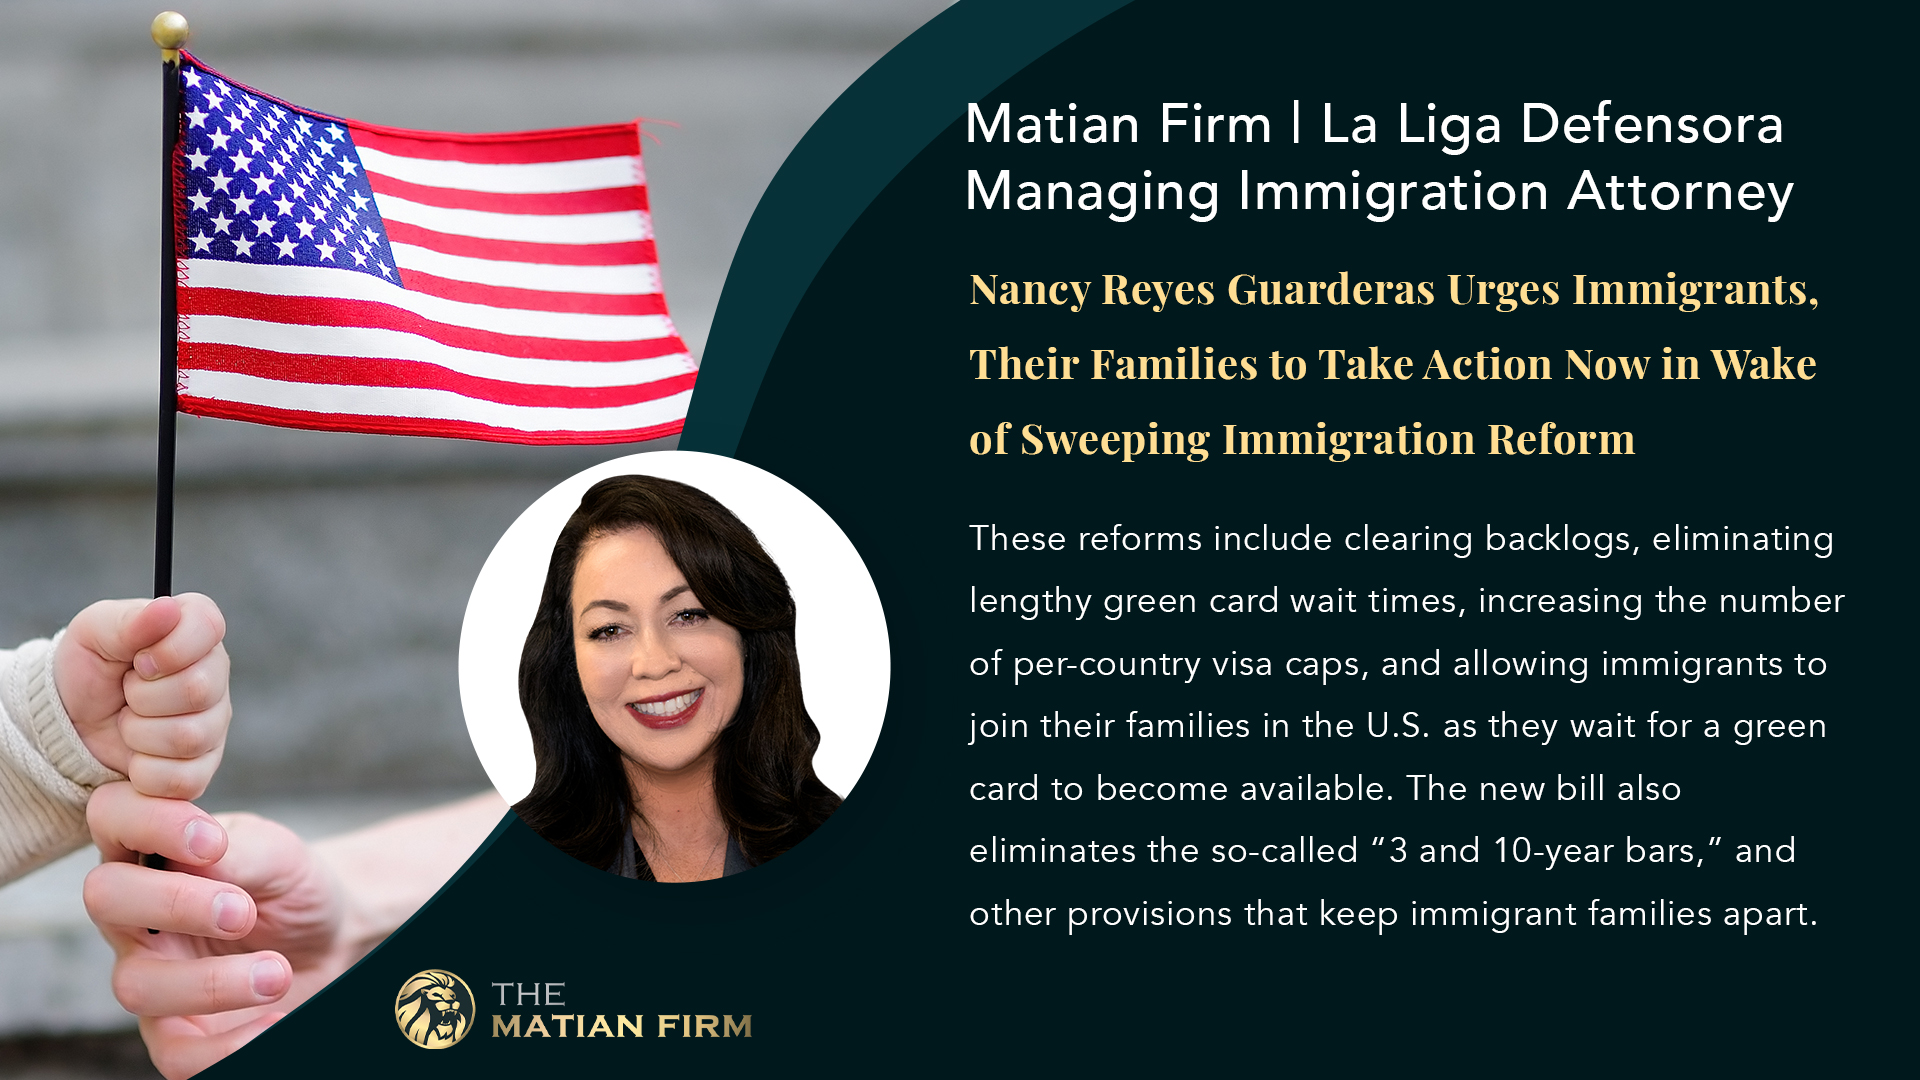 Matian Firm | La Liga Defensora Managing Immigration Attorney Nancy Reyes Guarderas Urges Immigrants, Their Families to Take Action Now in Wake of Sweeping Immigration Reform